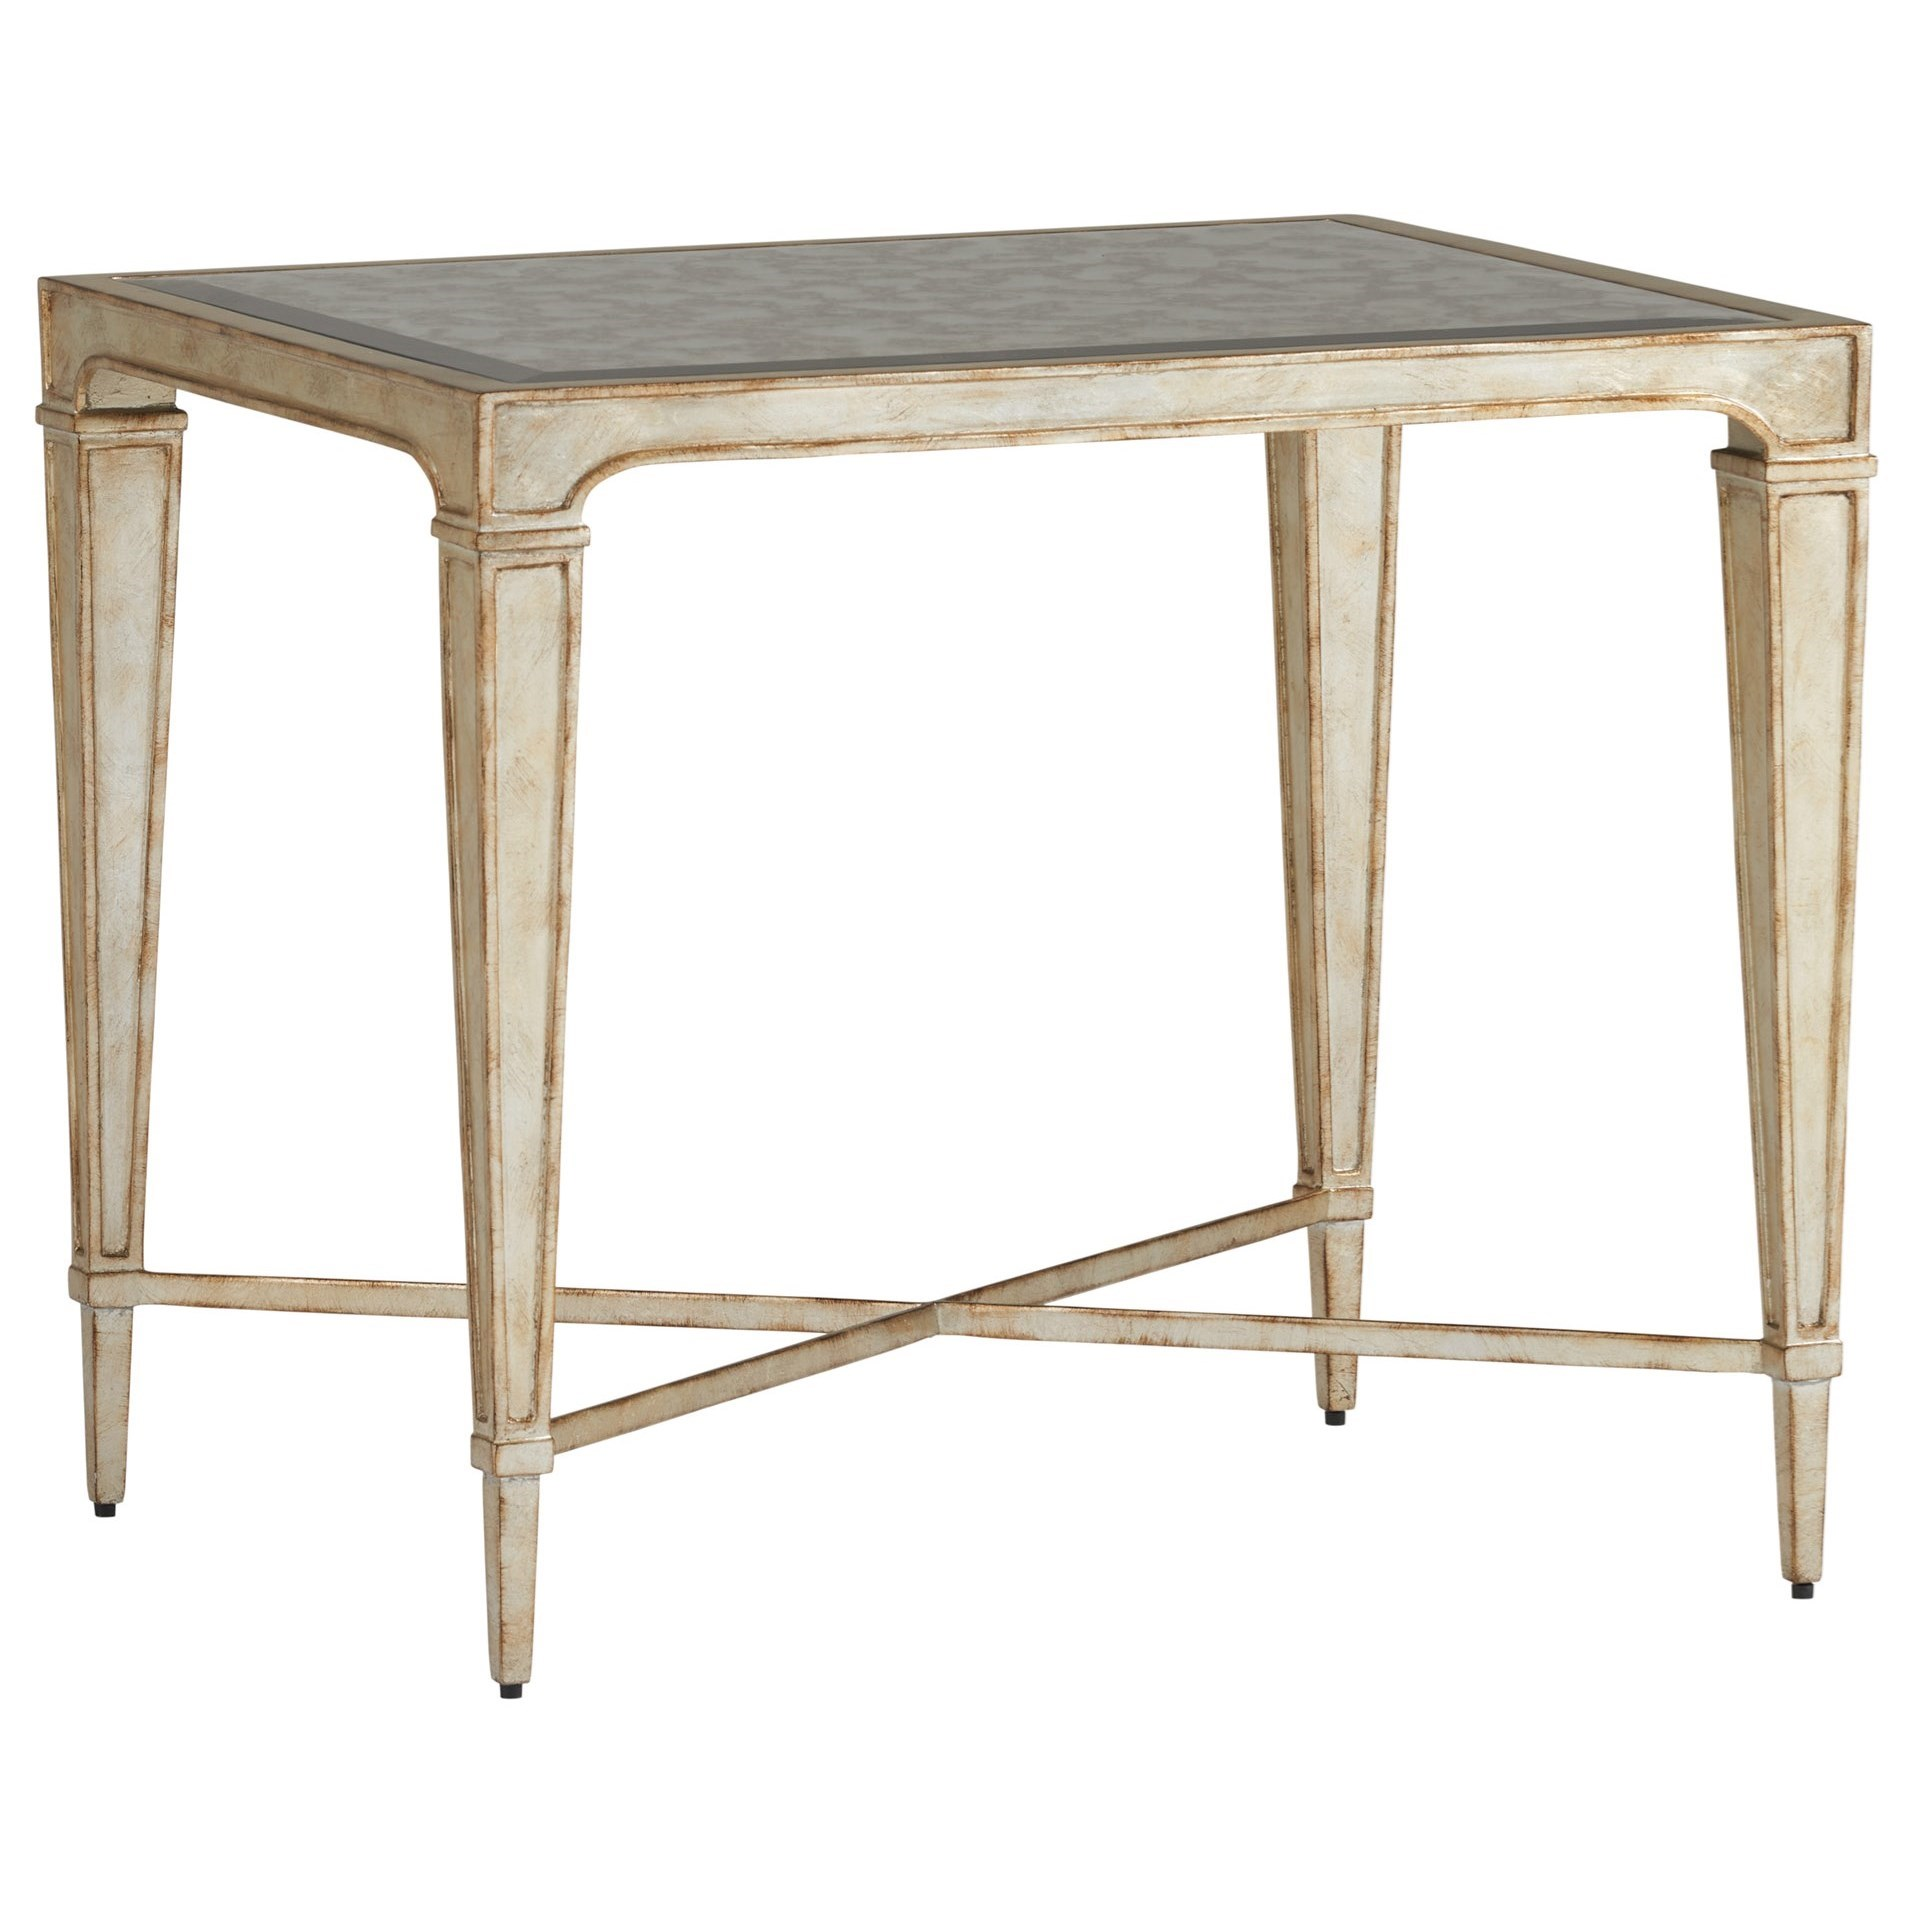 Carlyle Pierre End Table by Lexington at Baer's Furniture